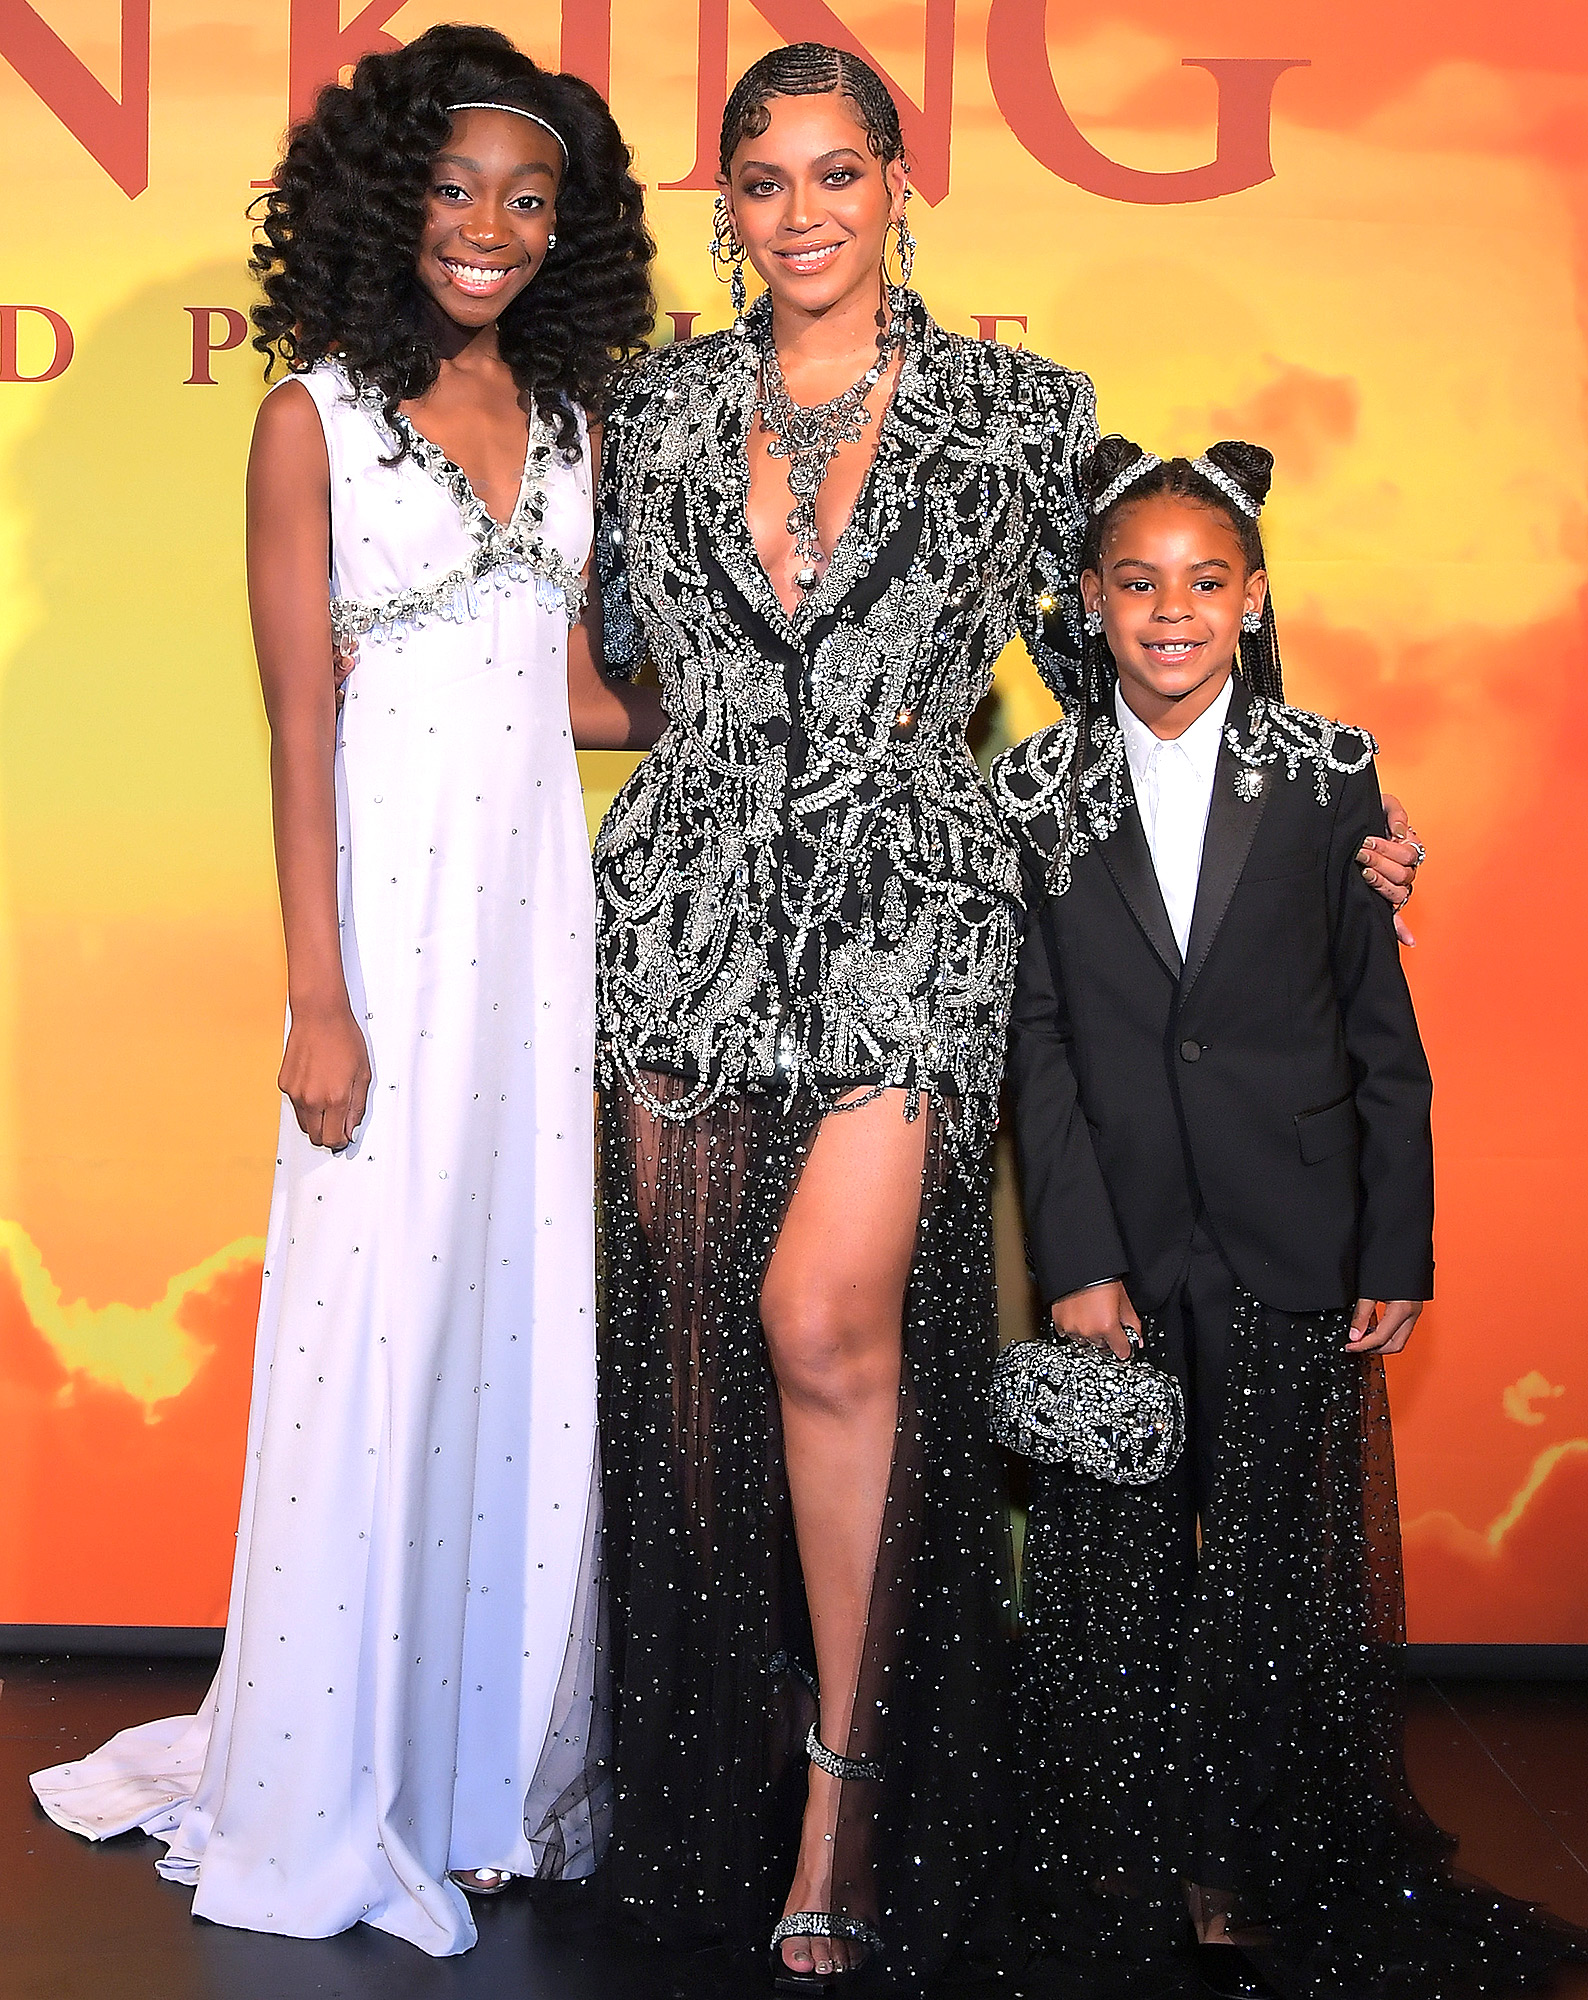 hahadi Wright Joseph, Beyonce Knowles-Carter, and Blue Ivy Carter